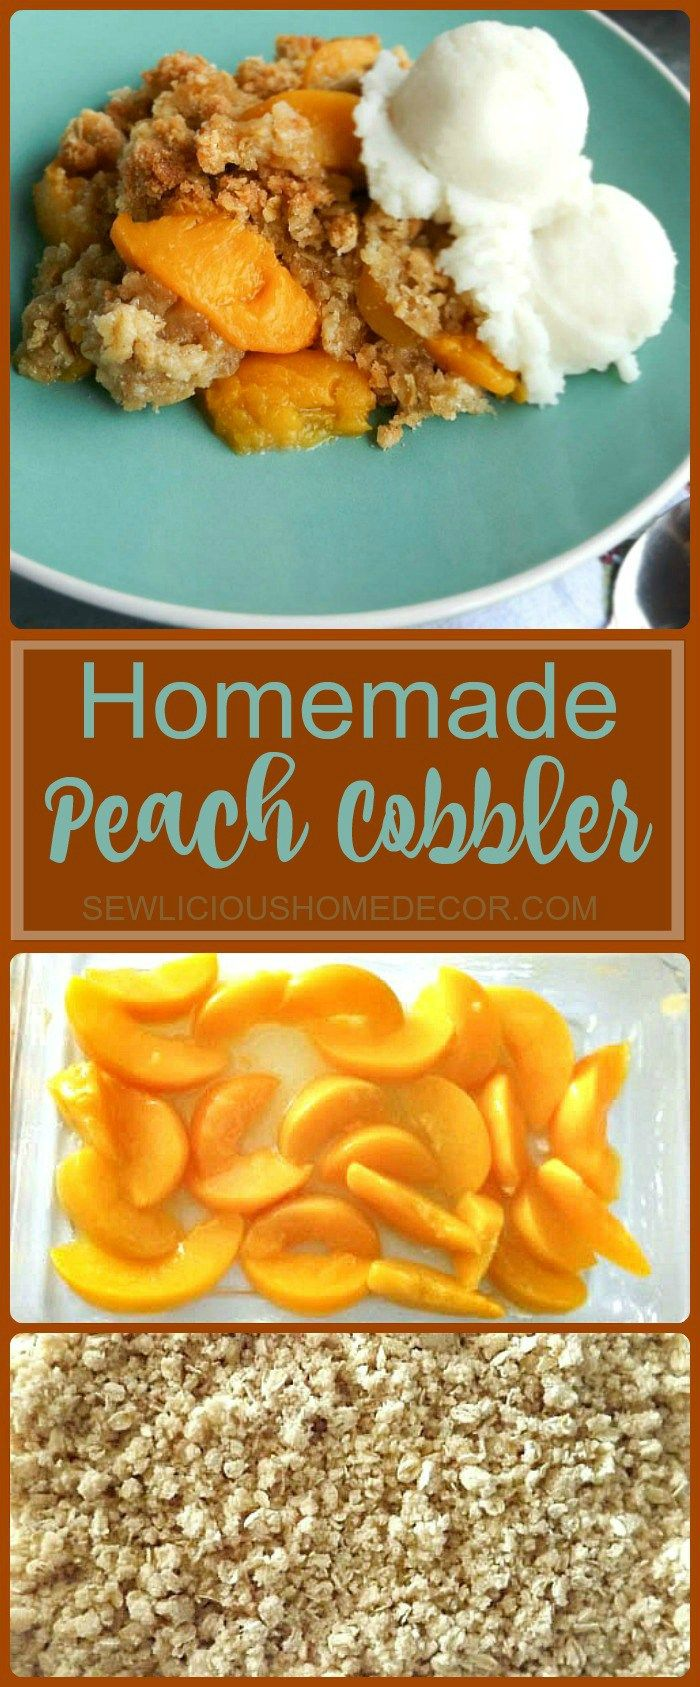 A fresh peach cobbler made from homemade ingredients, no boxed cake mix. A perfect Summertime dessert for potlucks. Also works well with canned peaches when fresh not available. Serve warm with ice cream. Homemade Peach Cobbler